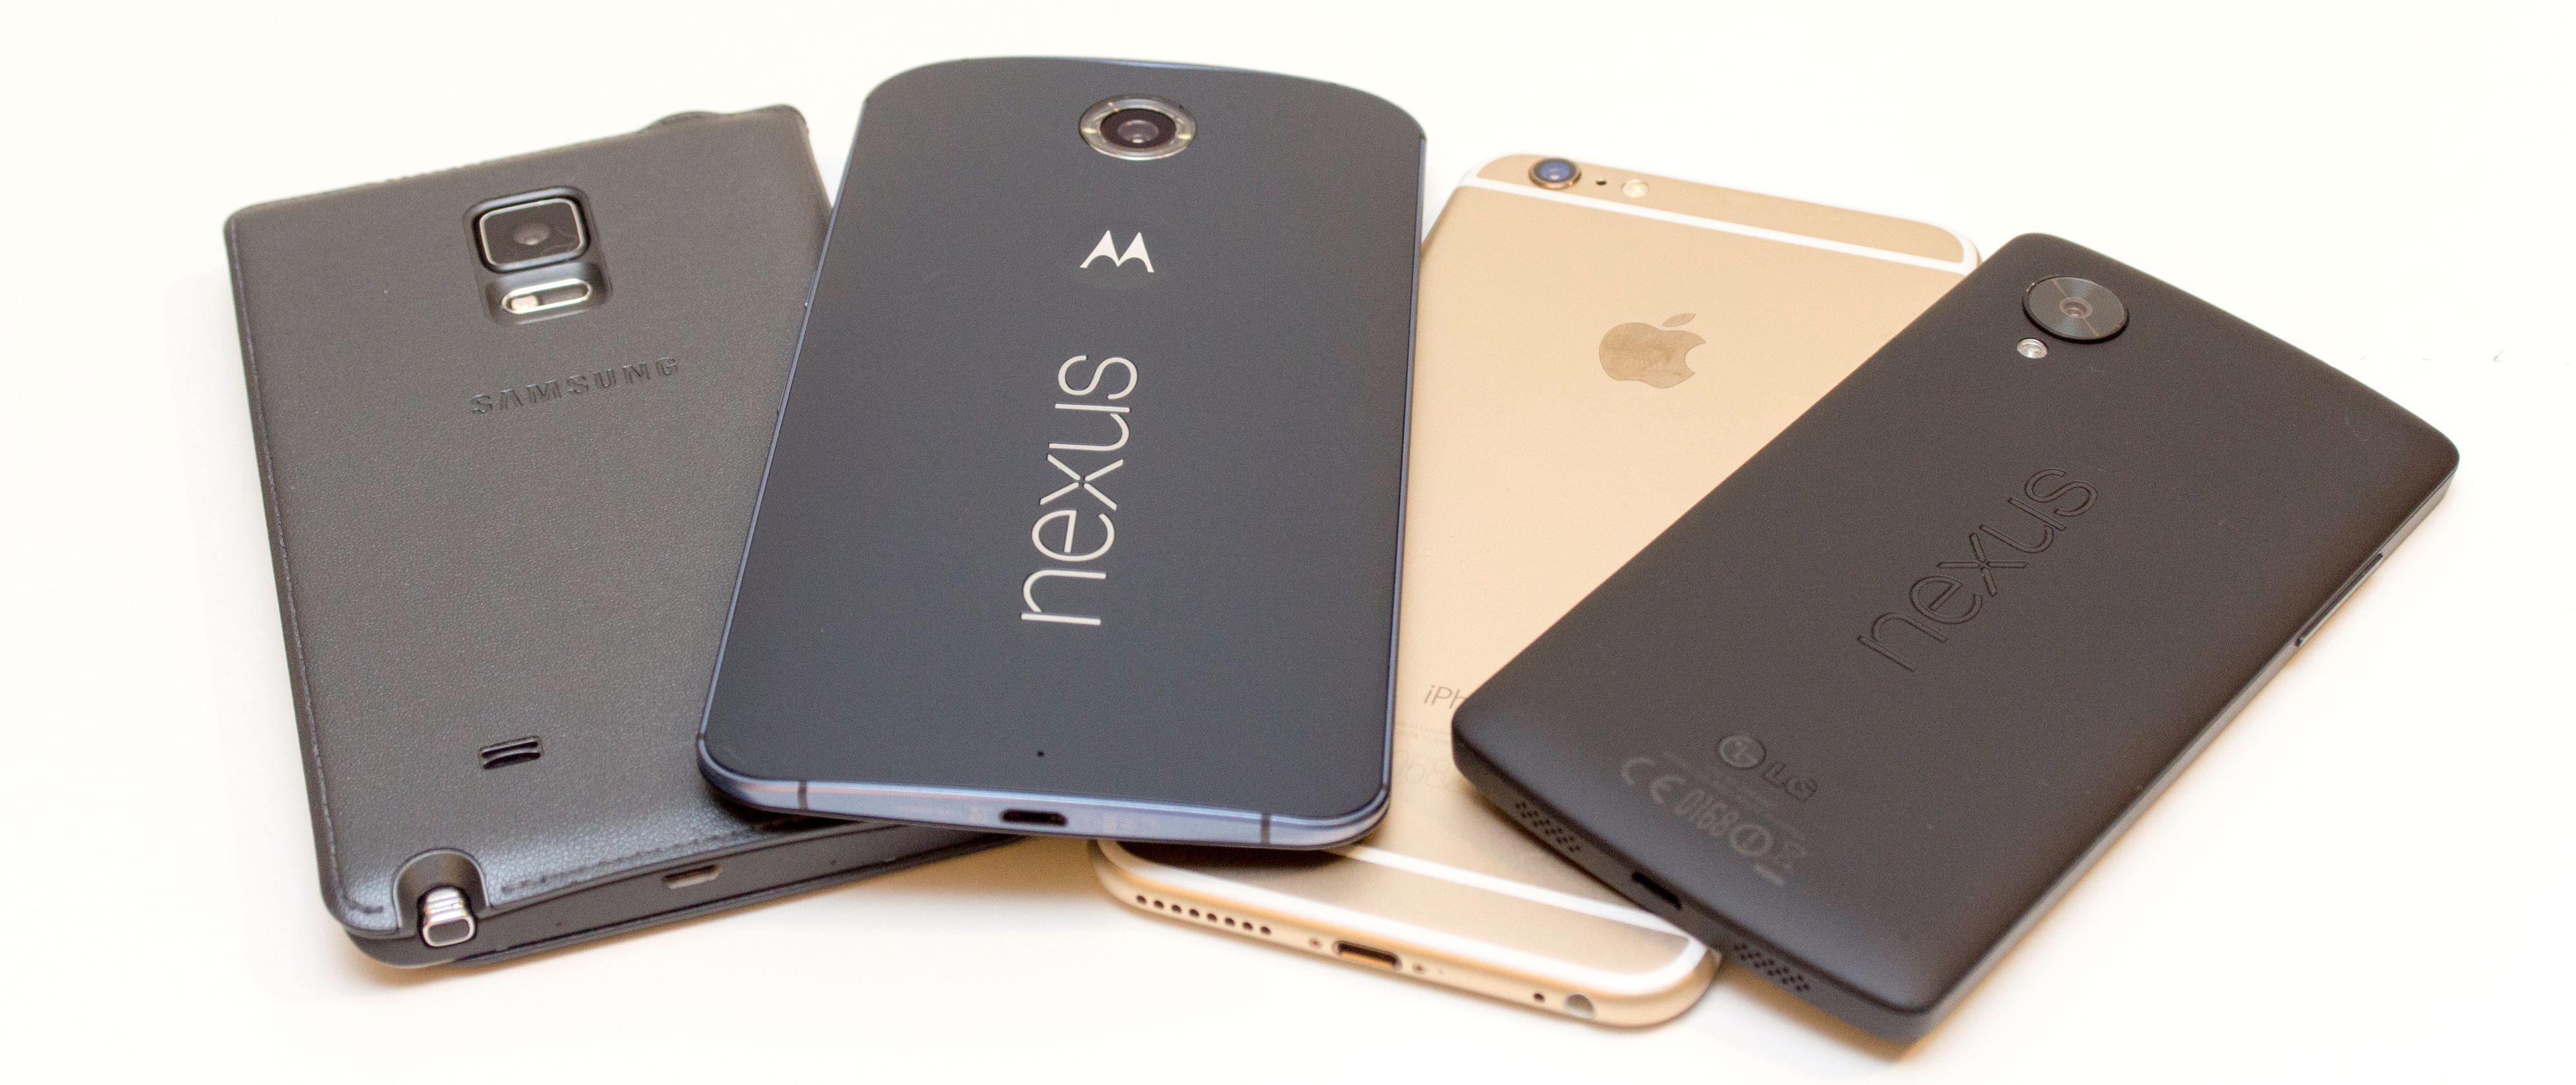 Nye Nexus 6 er ingen småtass. Her sammen med Samsung Galaxy Note Edge, Apple iPhone 6 Plus og LG Nexus 5. Foto: Kurt Lekanger, Tek.no